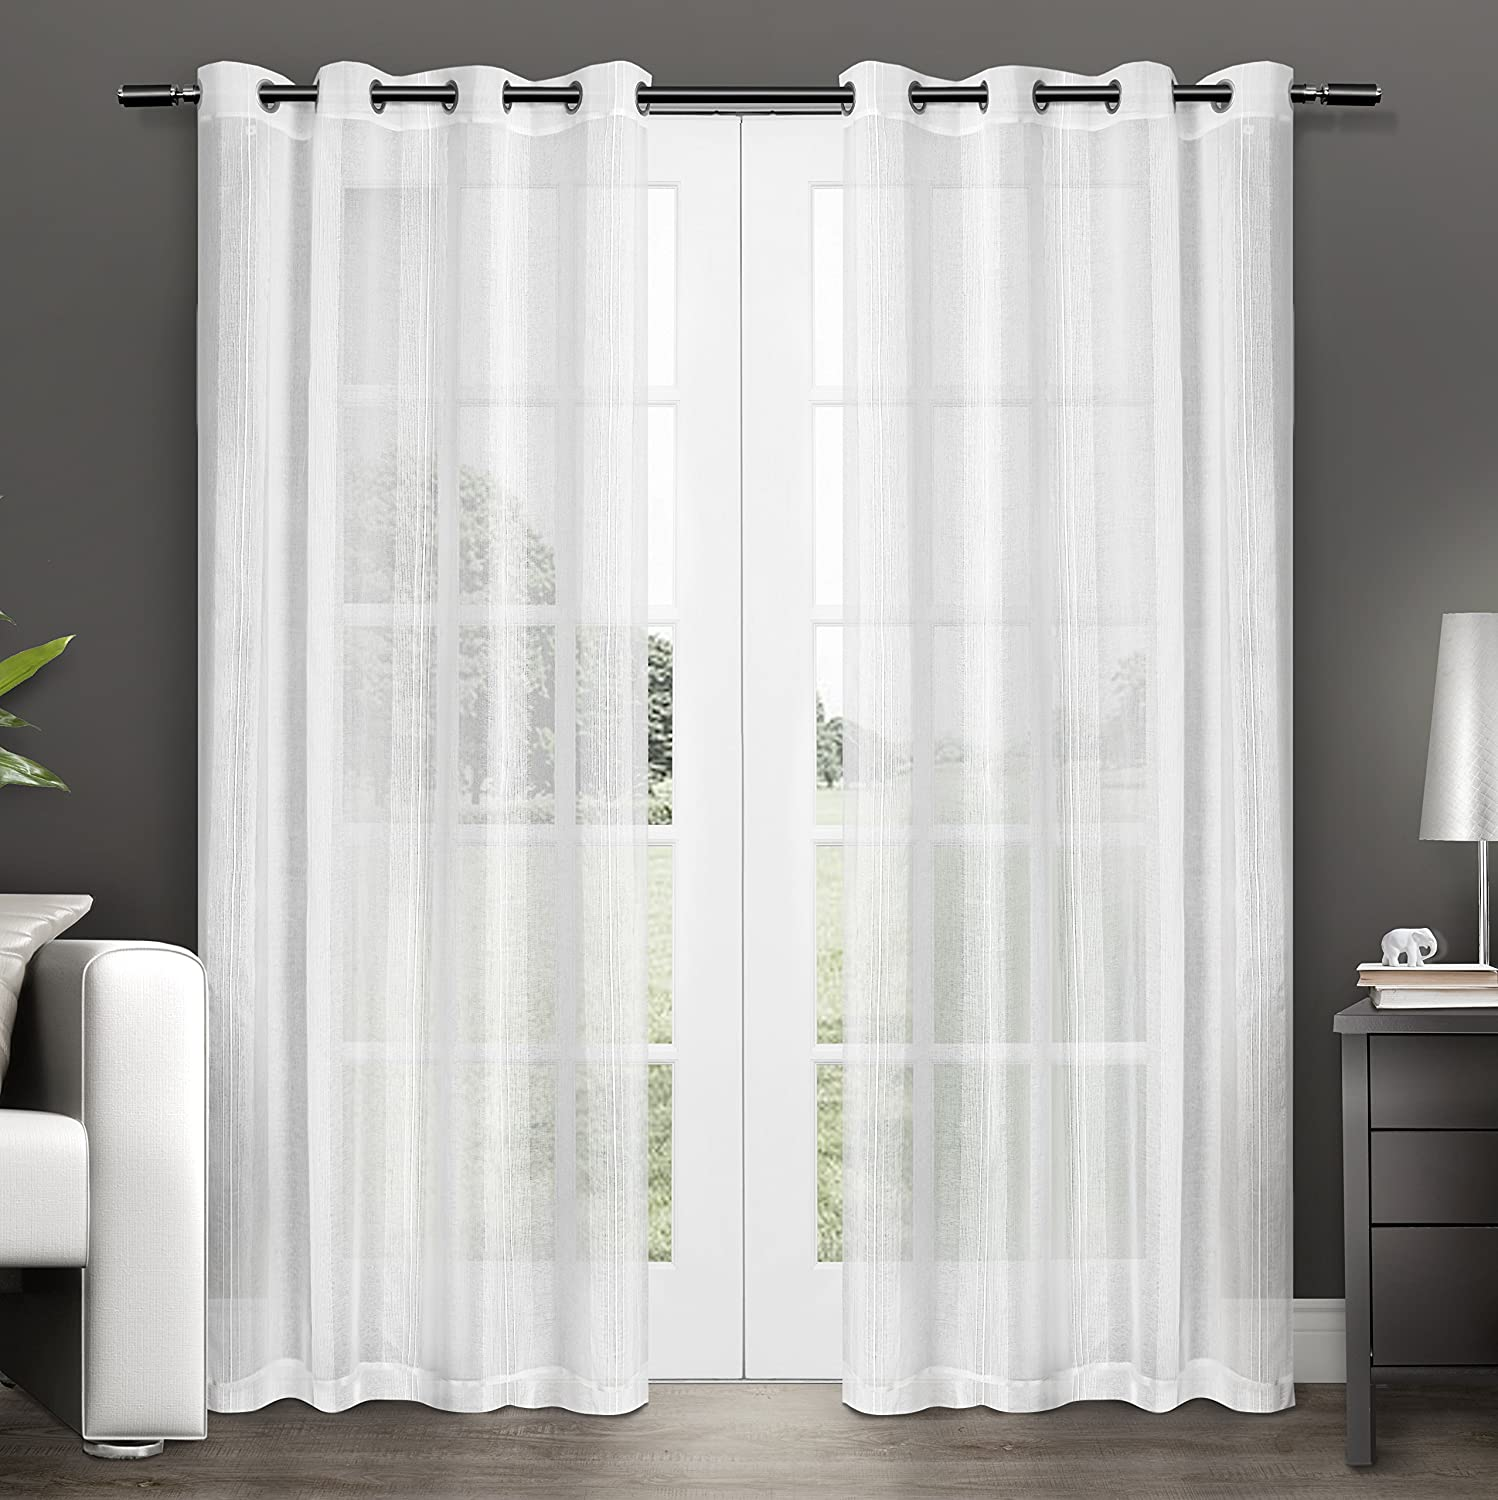 Sheer curtain panels ease bedding with style for Grommet curtains with sheers